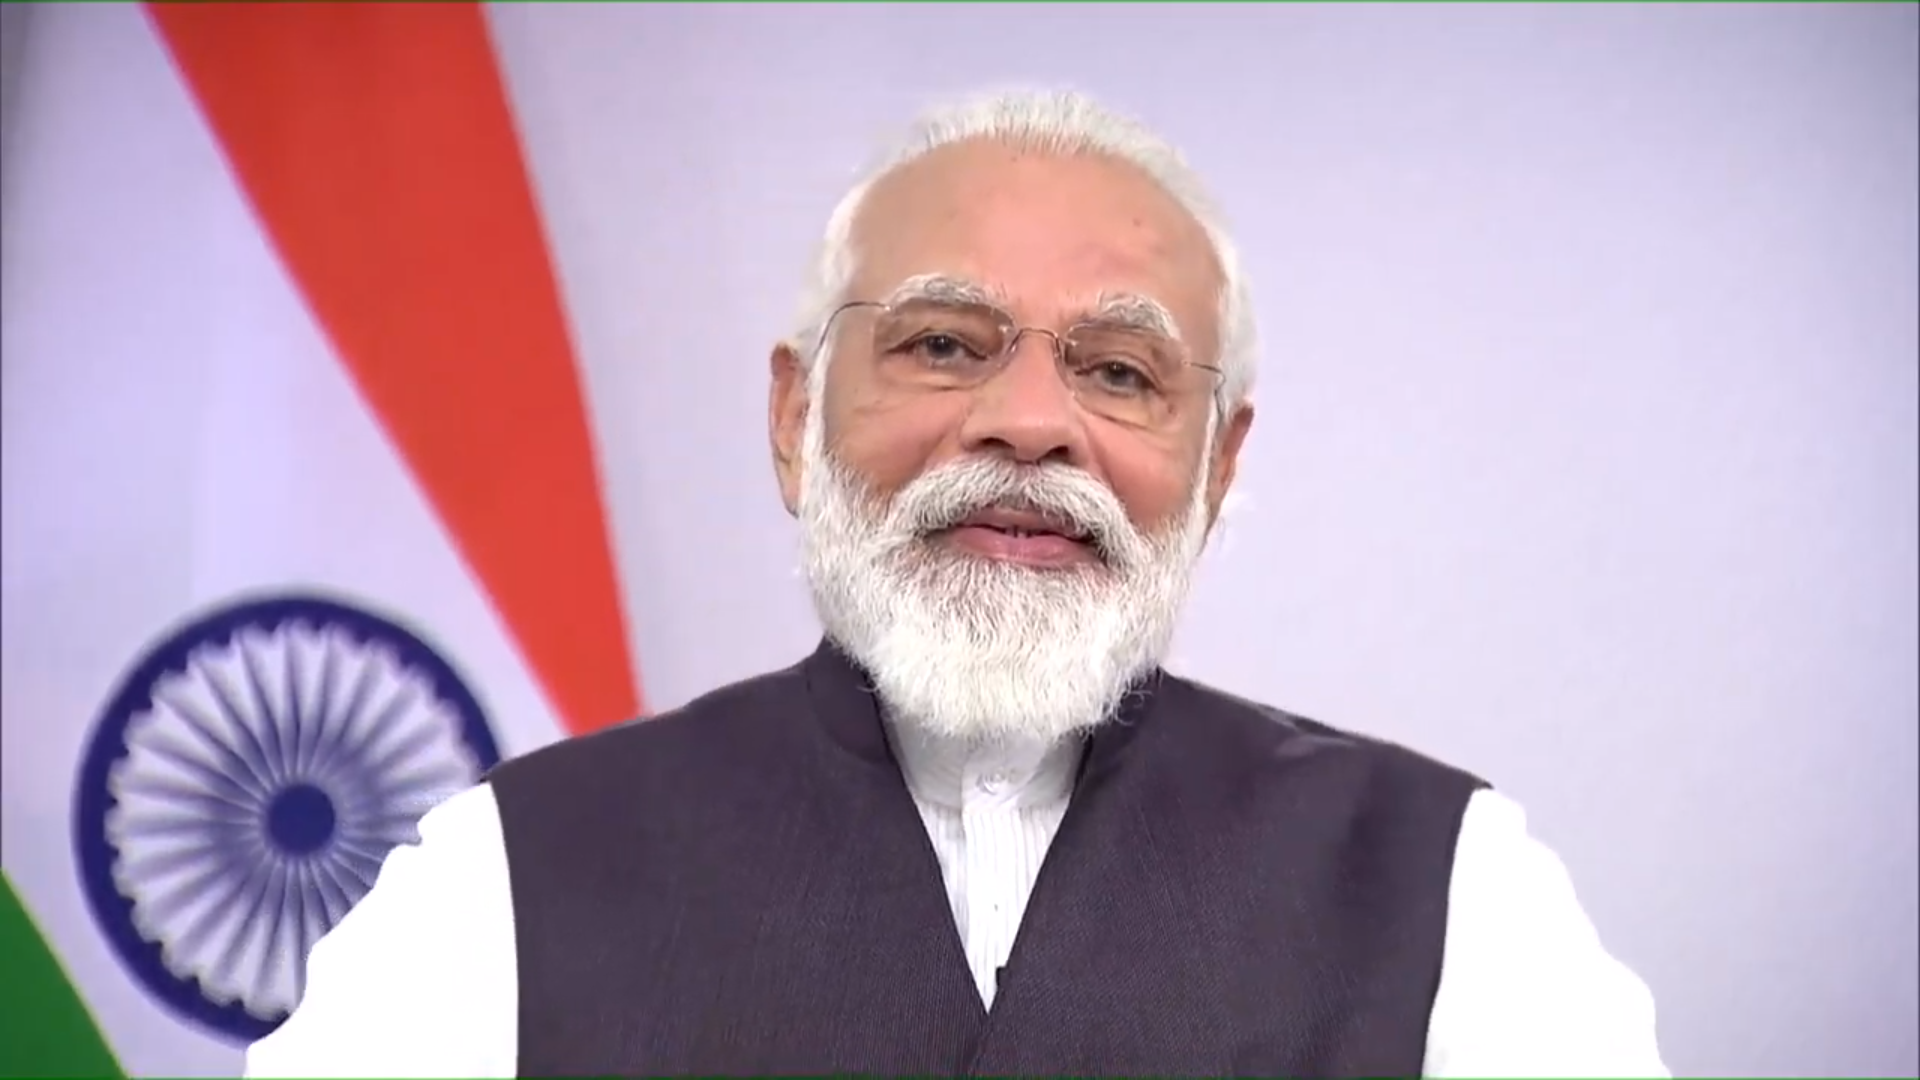 the PM said India has a history of overcoming social and economic challenges and said the nation was looking to recover from the COVID-19 crisis.